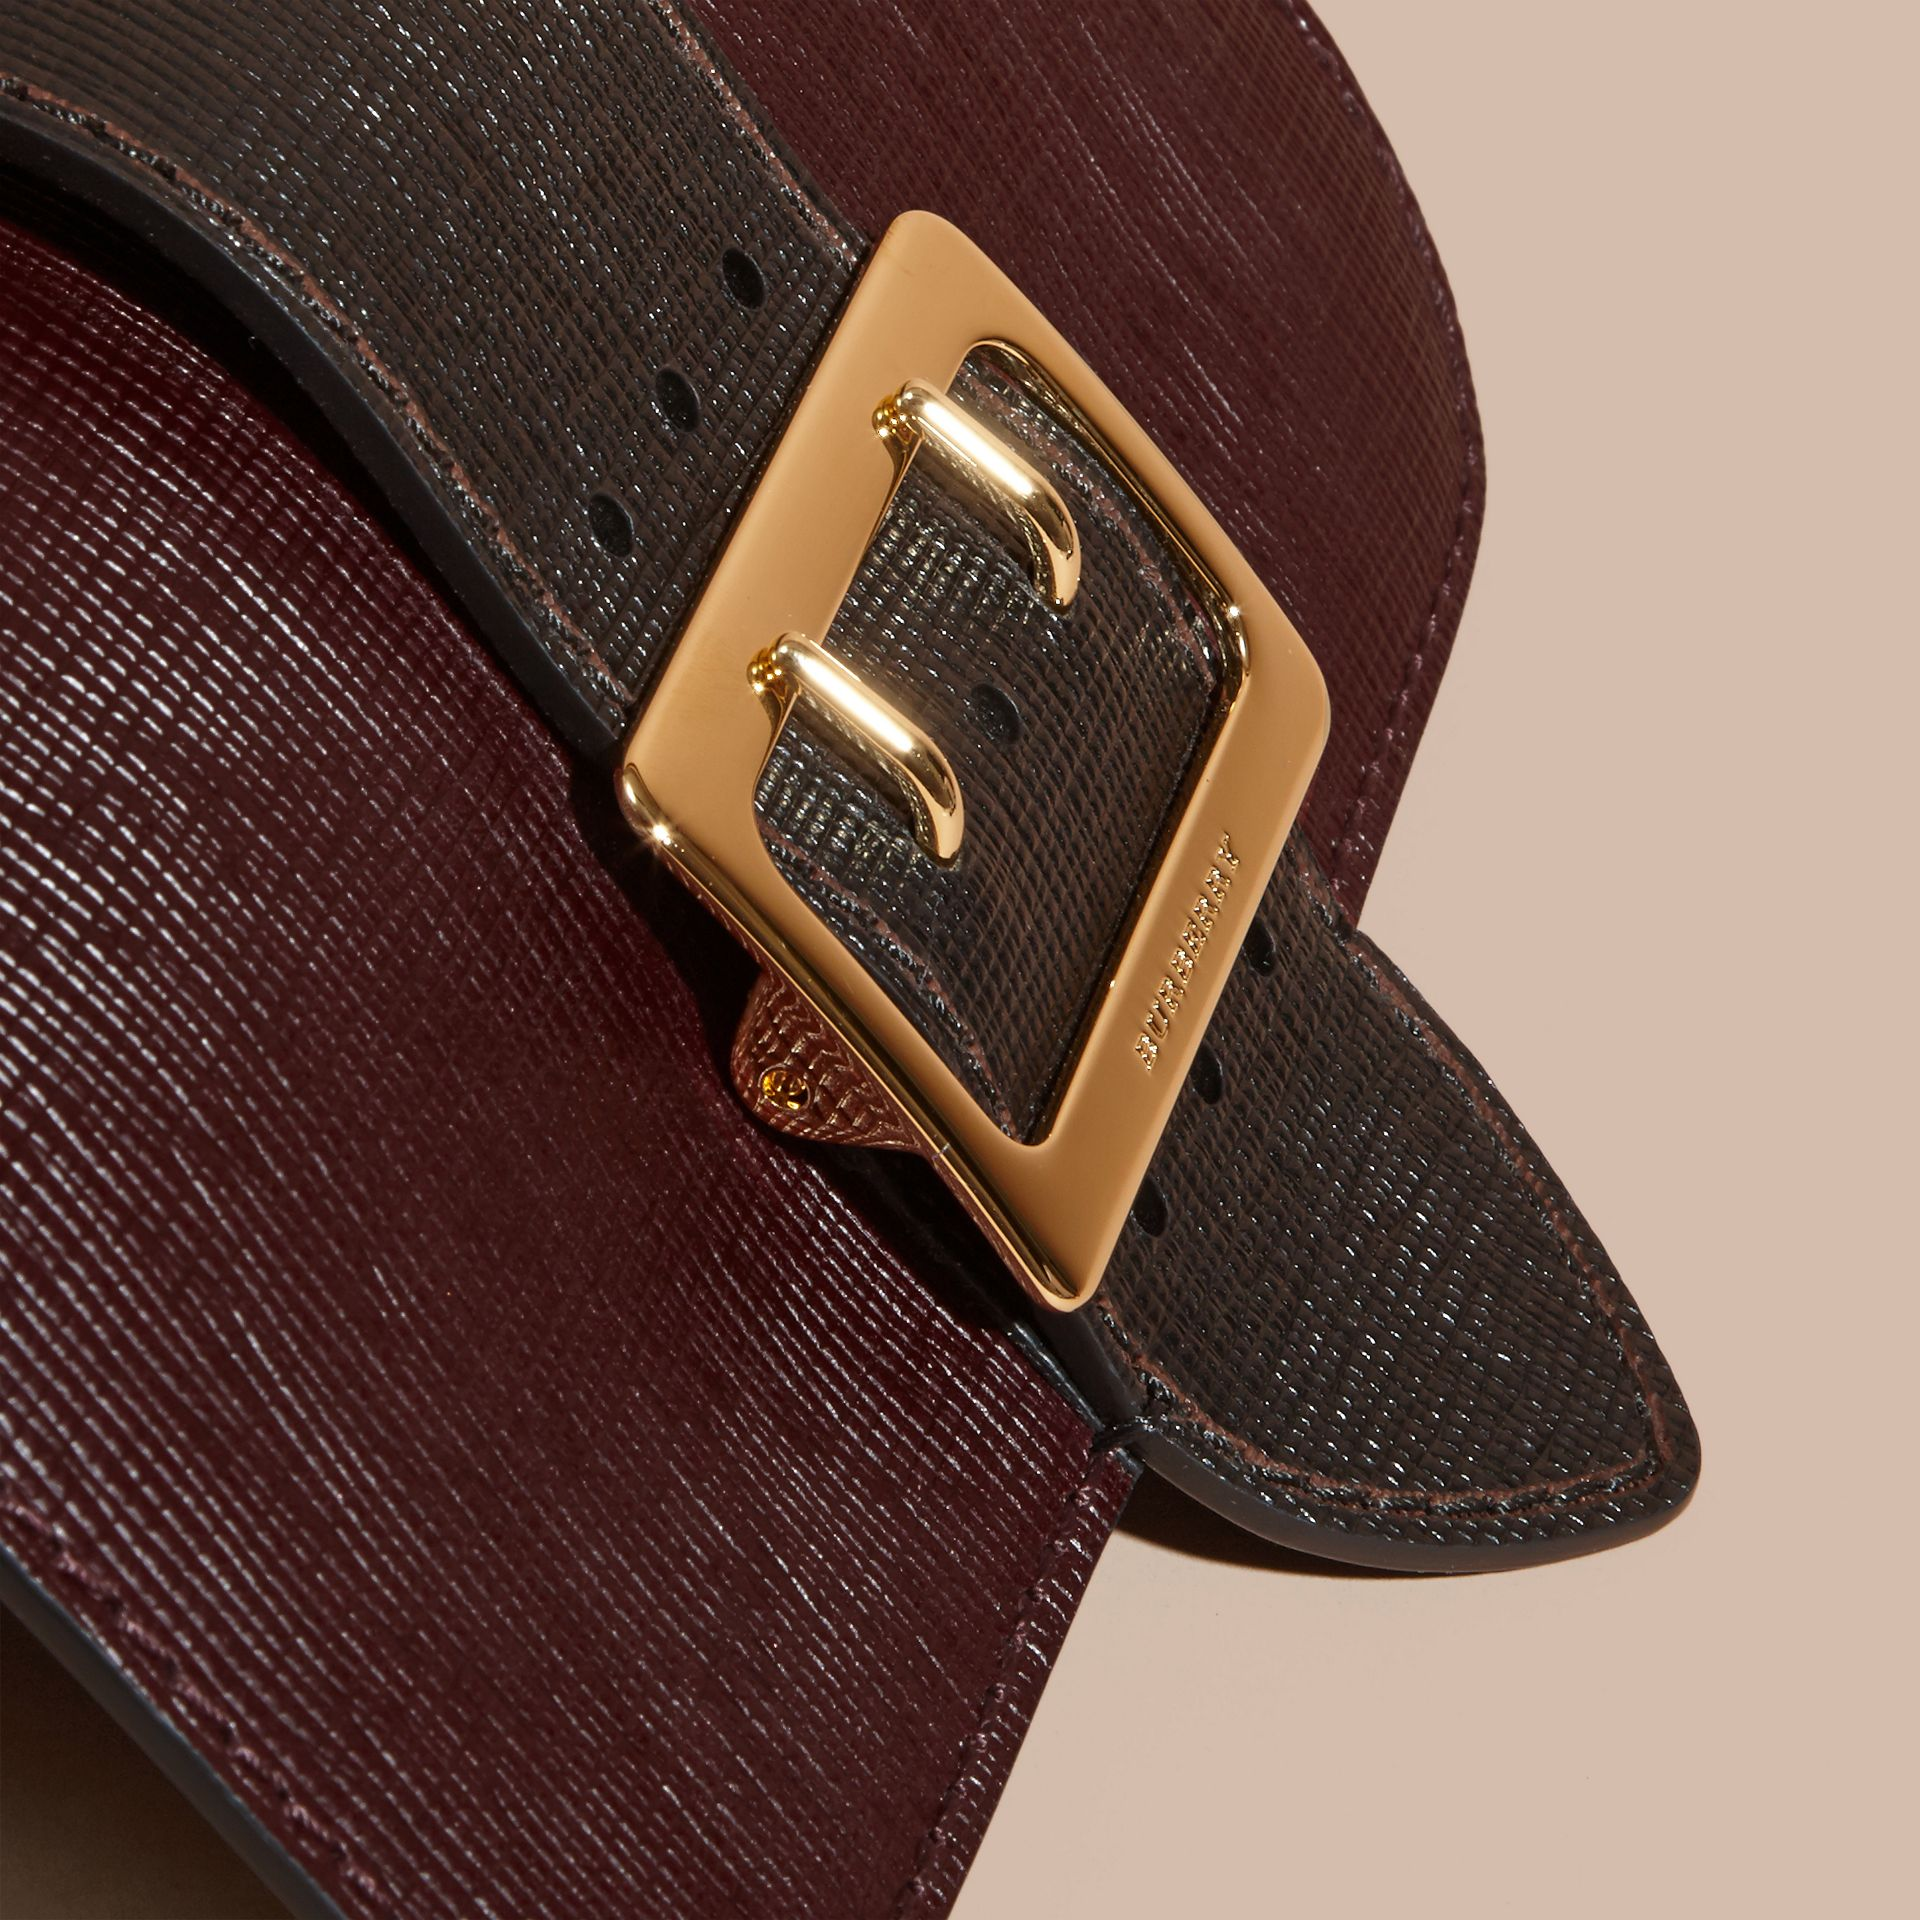 Burgundy/black The Medium Buckle Bag in House Check and Textured Leather Burgundy/black - gallery image 2